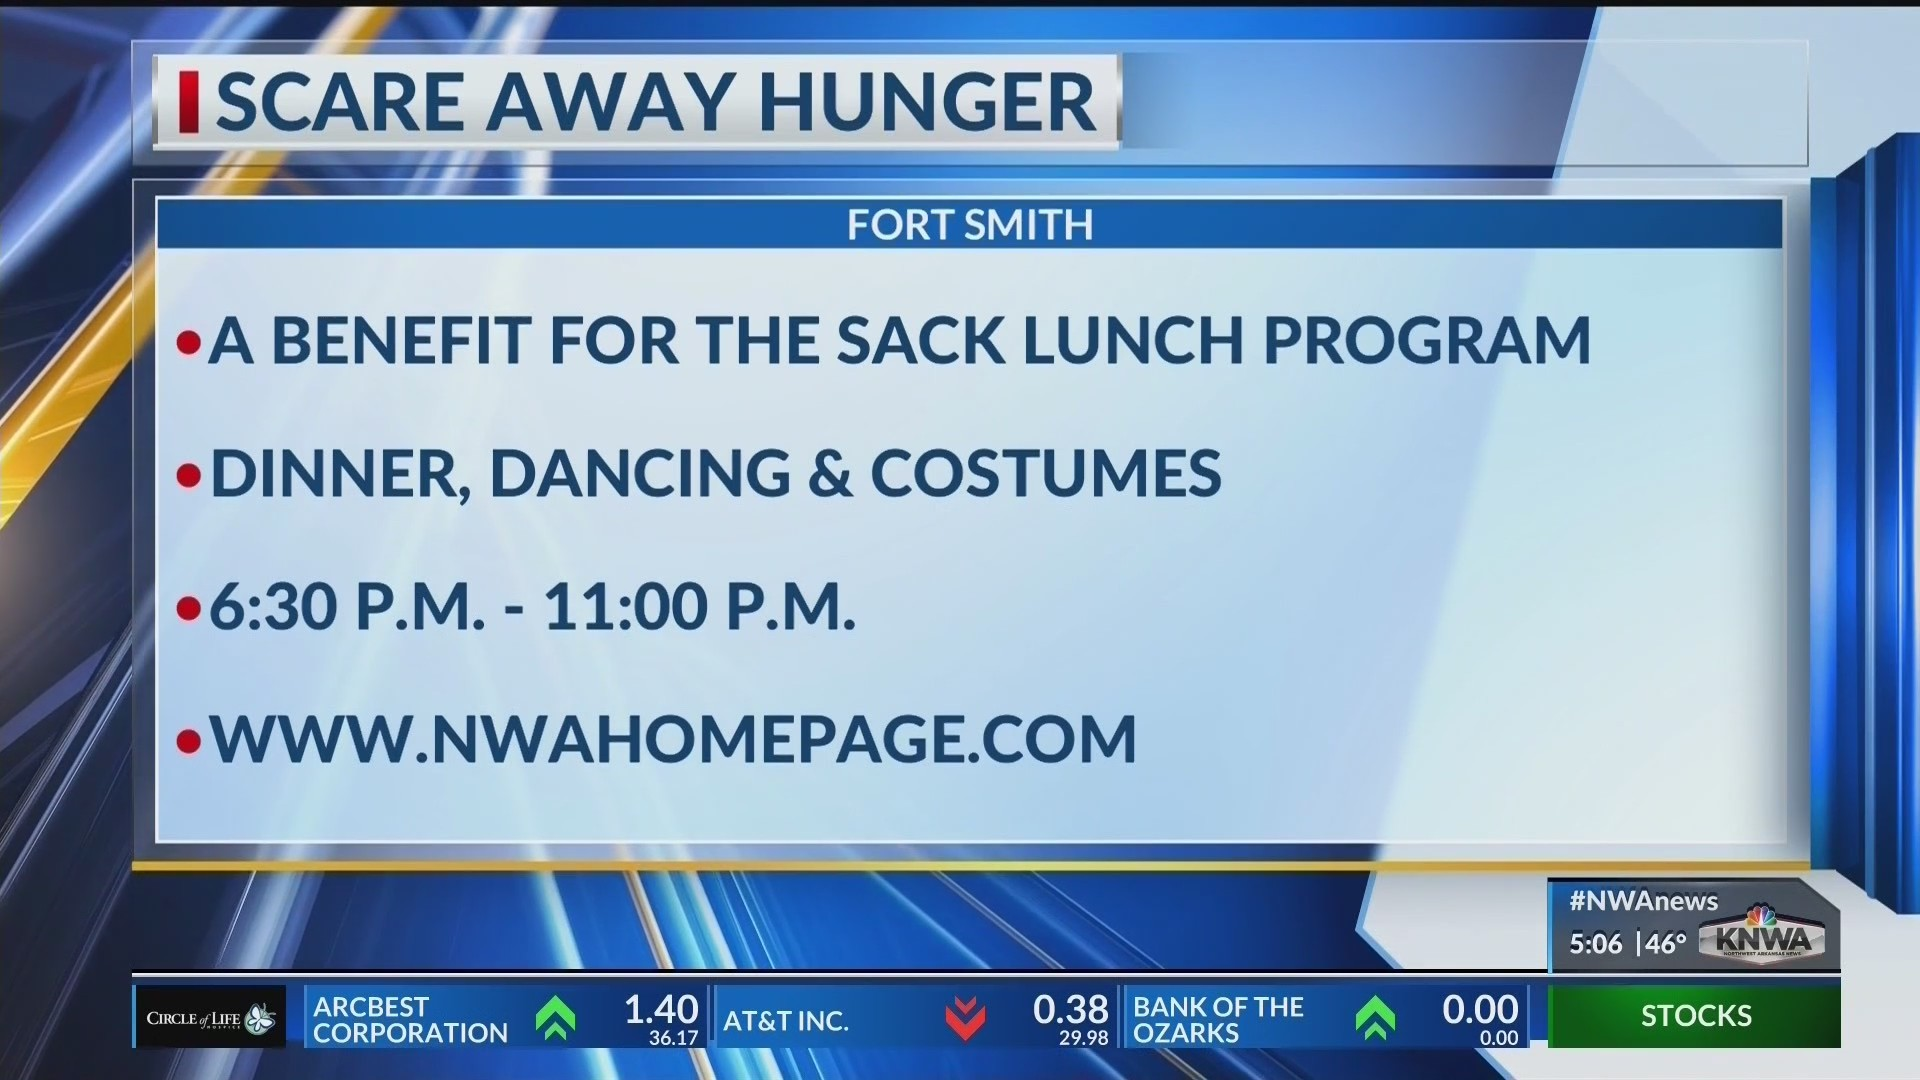 Scare_Away_Hunger__A_Benefit_for_the_Sac_0_20181026131344